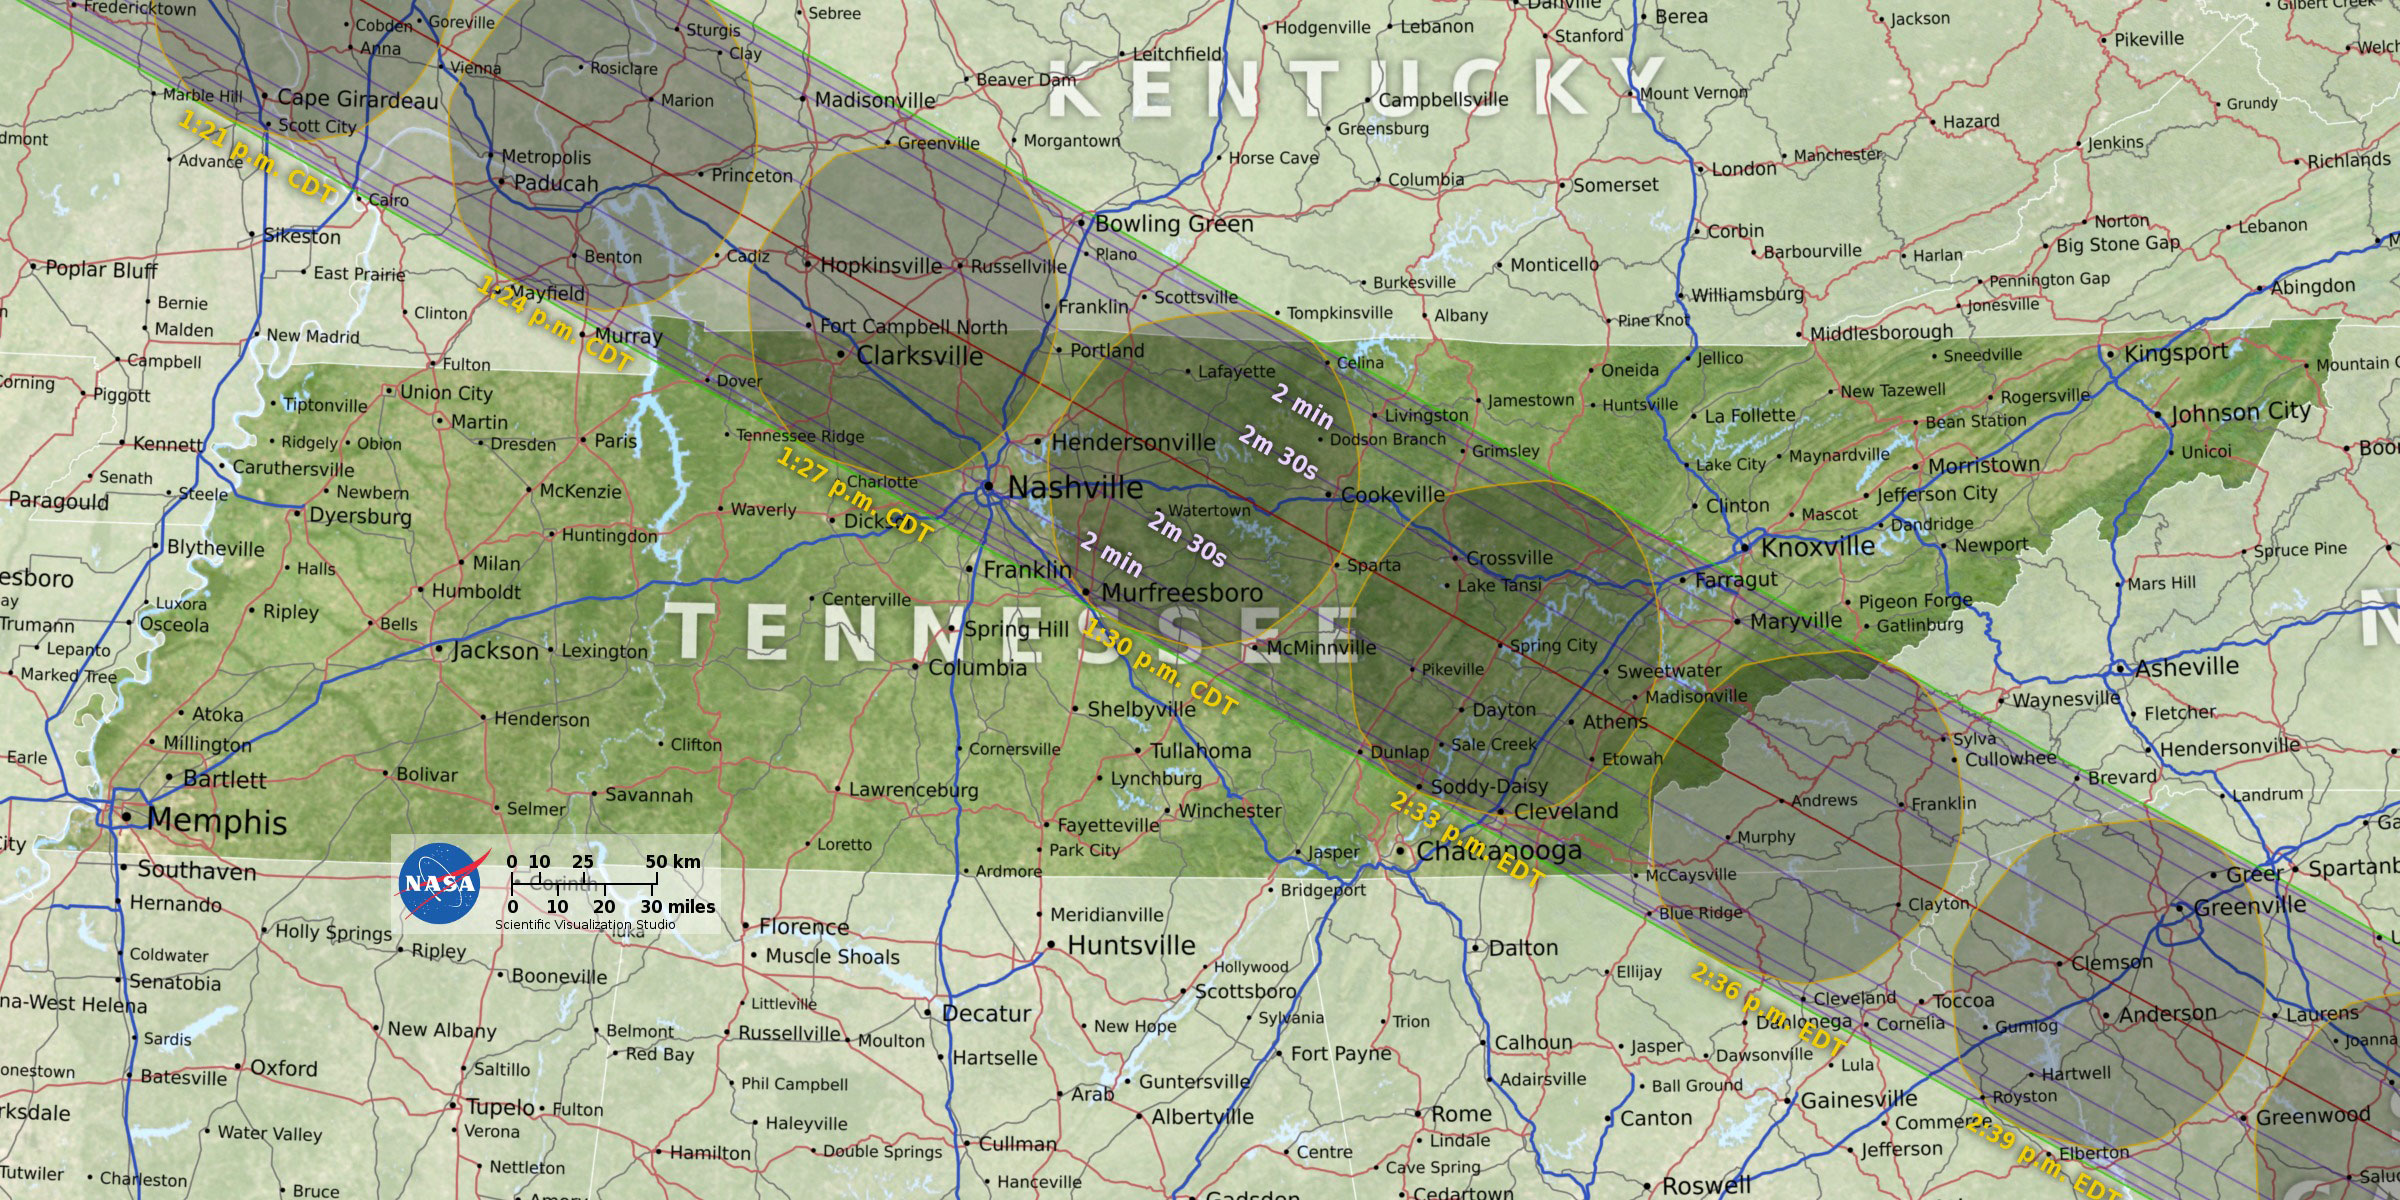 Solar Eclipse Fort Donelson National Battlefield US - Ft donelson river on us map